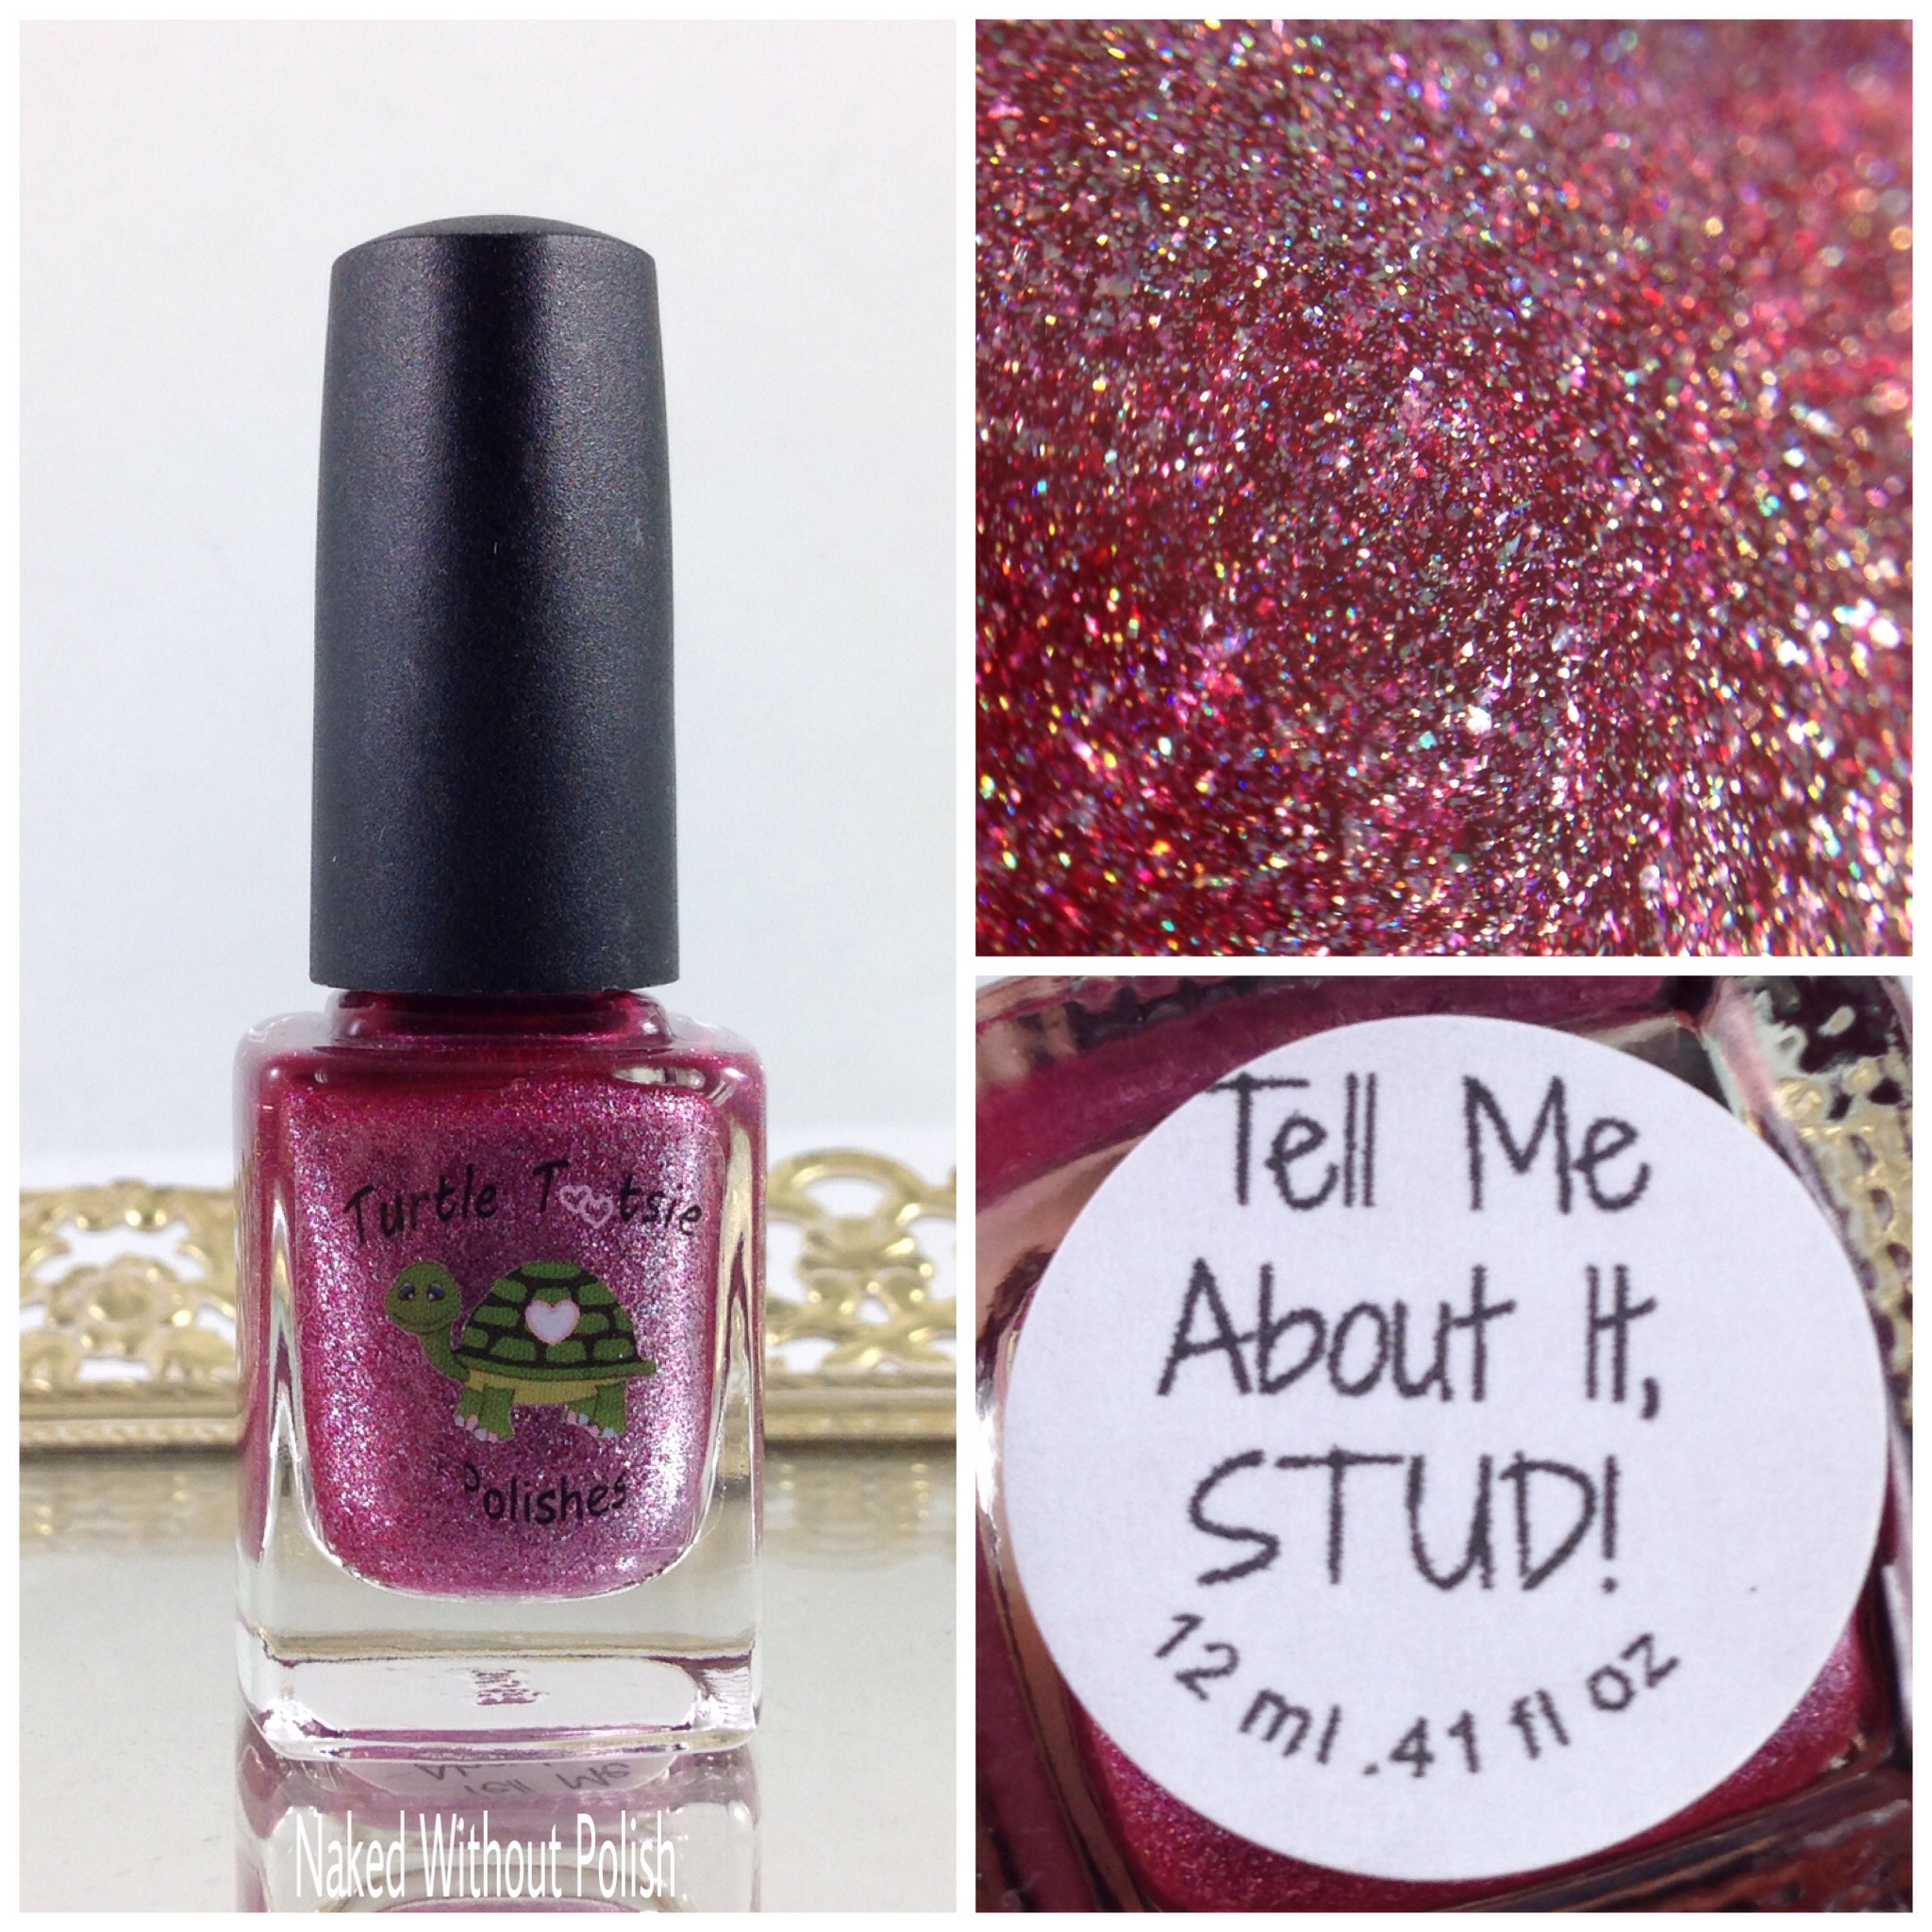 Turtle-Tootsie-Polishes-Tell-Me-About-It-Stud-1